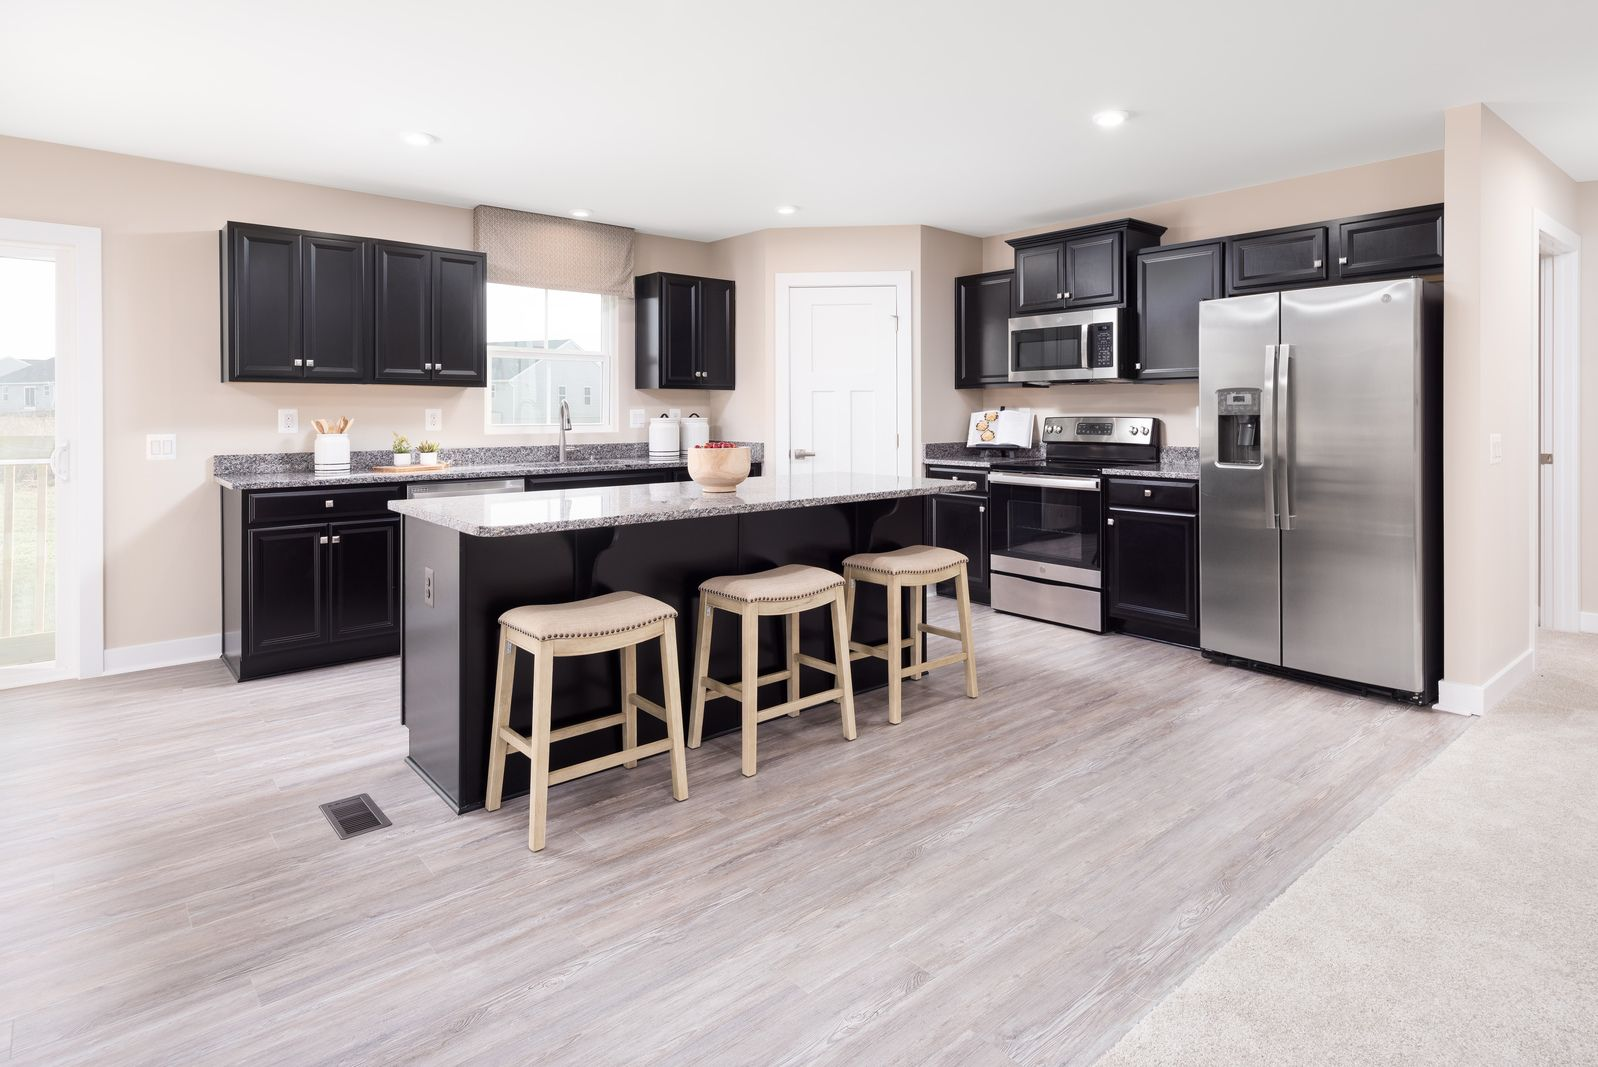 'The Reserve at Beaver Creek' by Ryan Homes-CLW in Cleveland